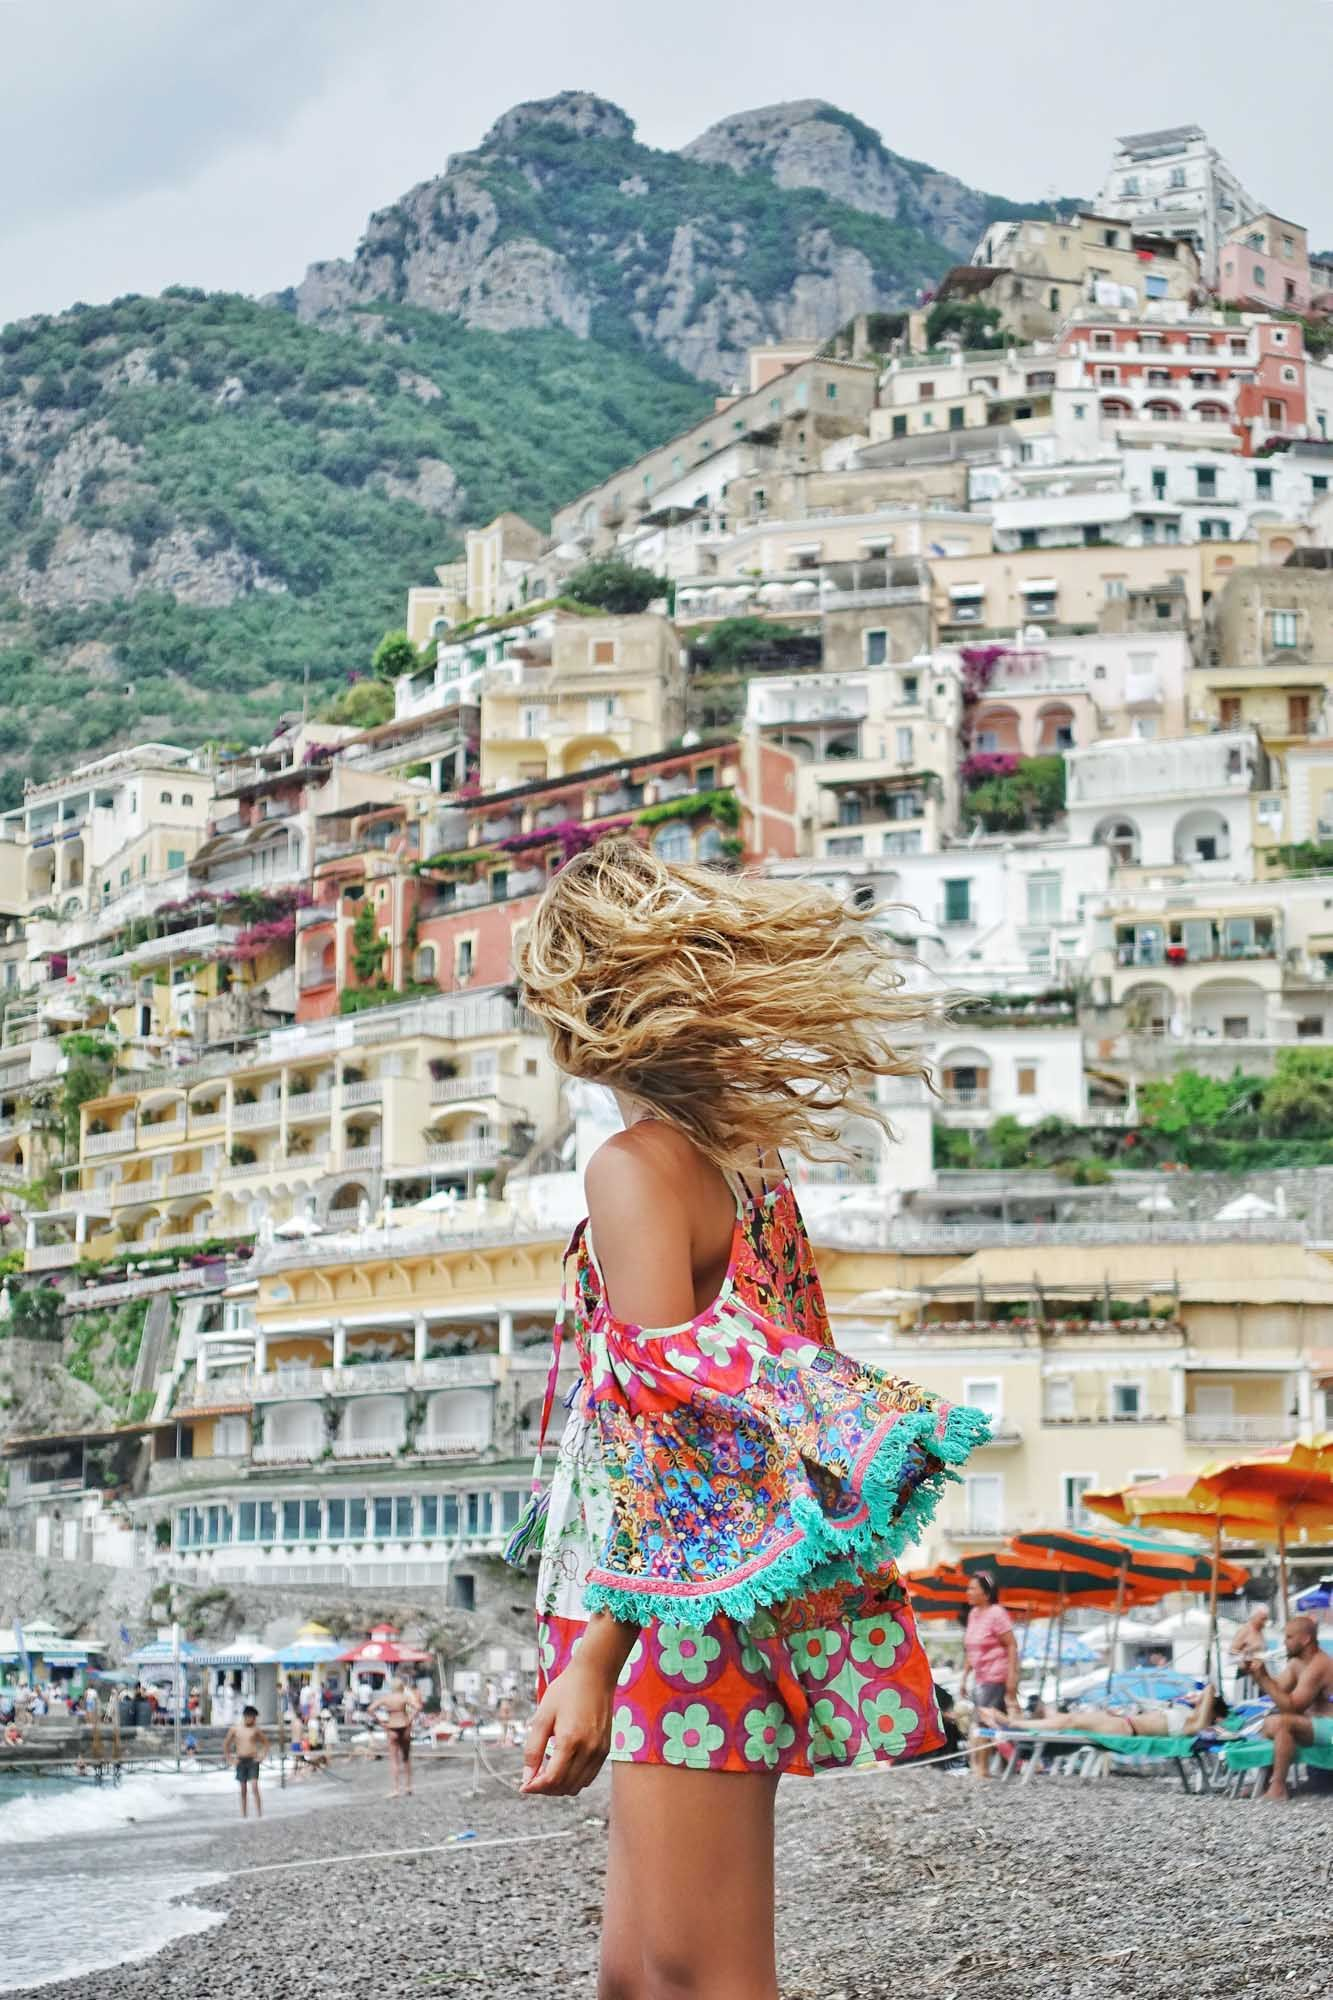 Sony RX100V Tips & Tricks, Positano, Italy